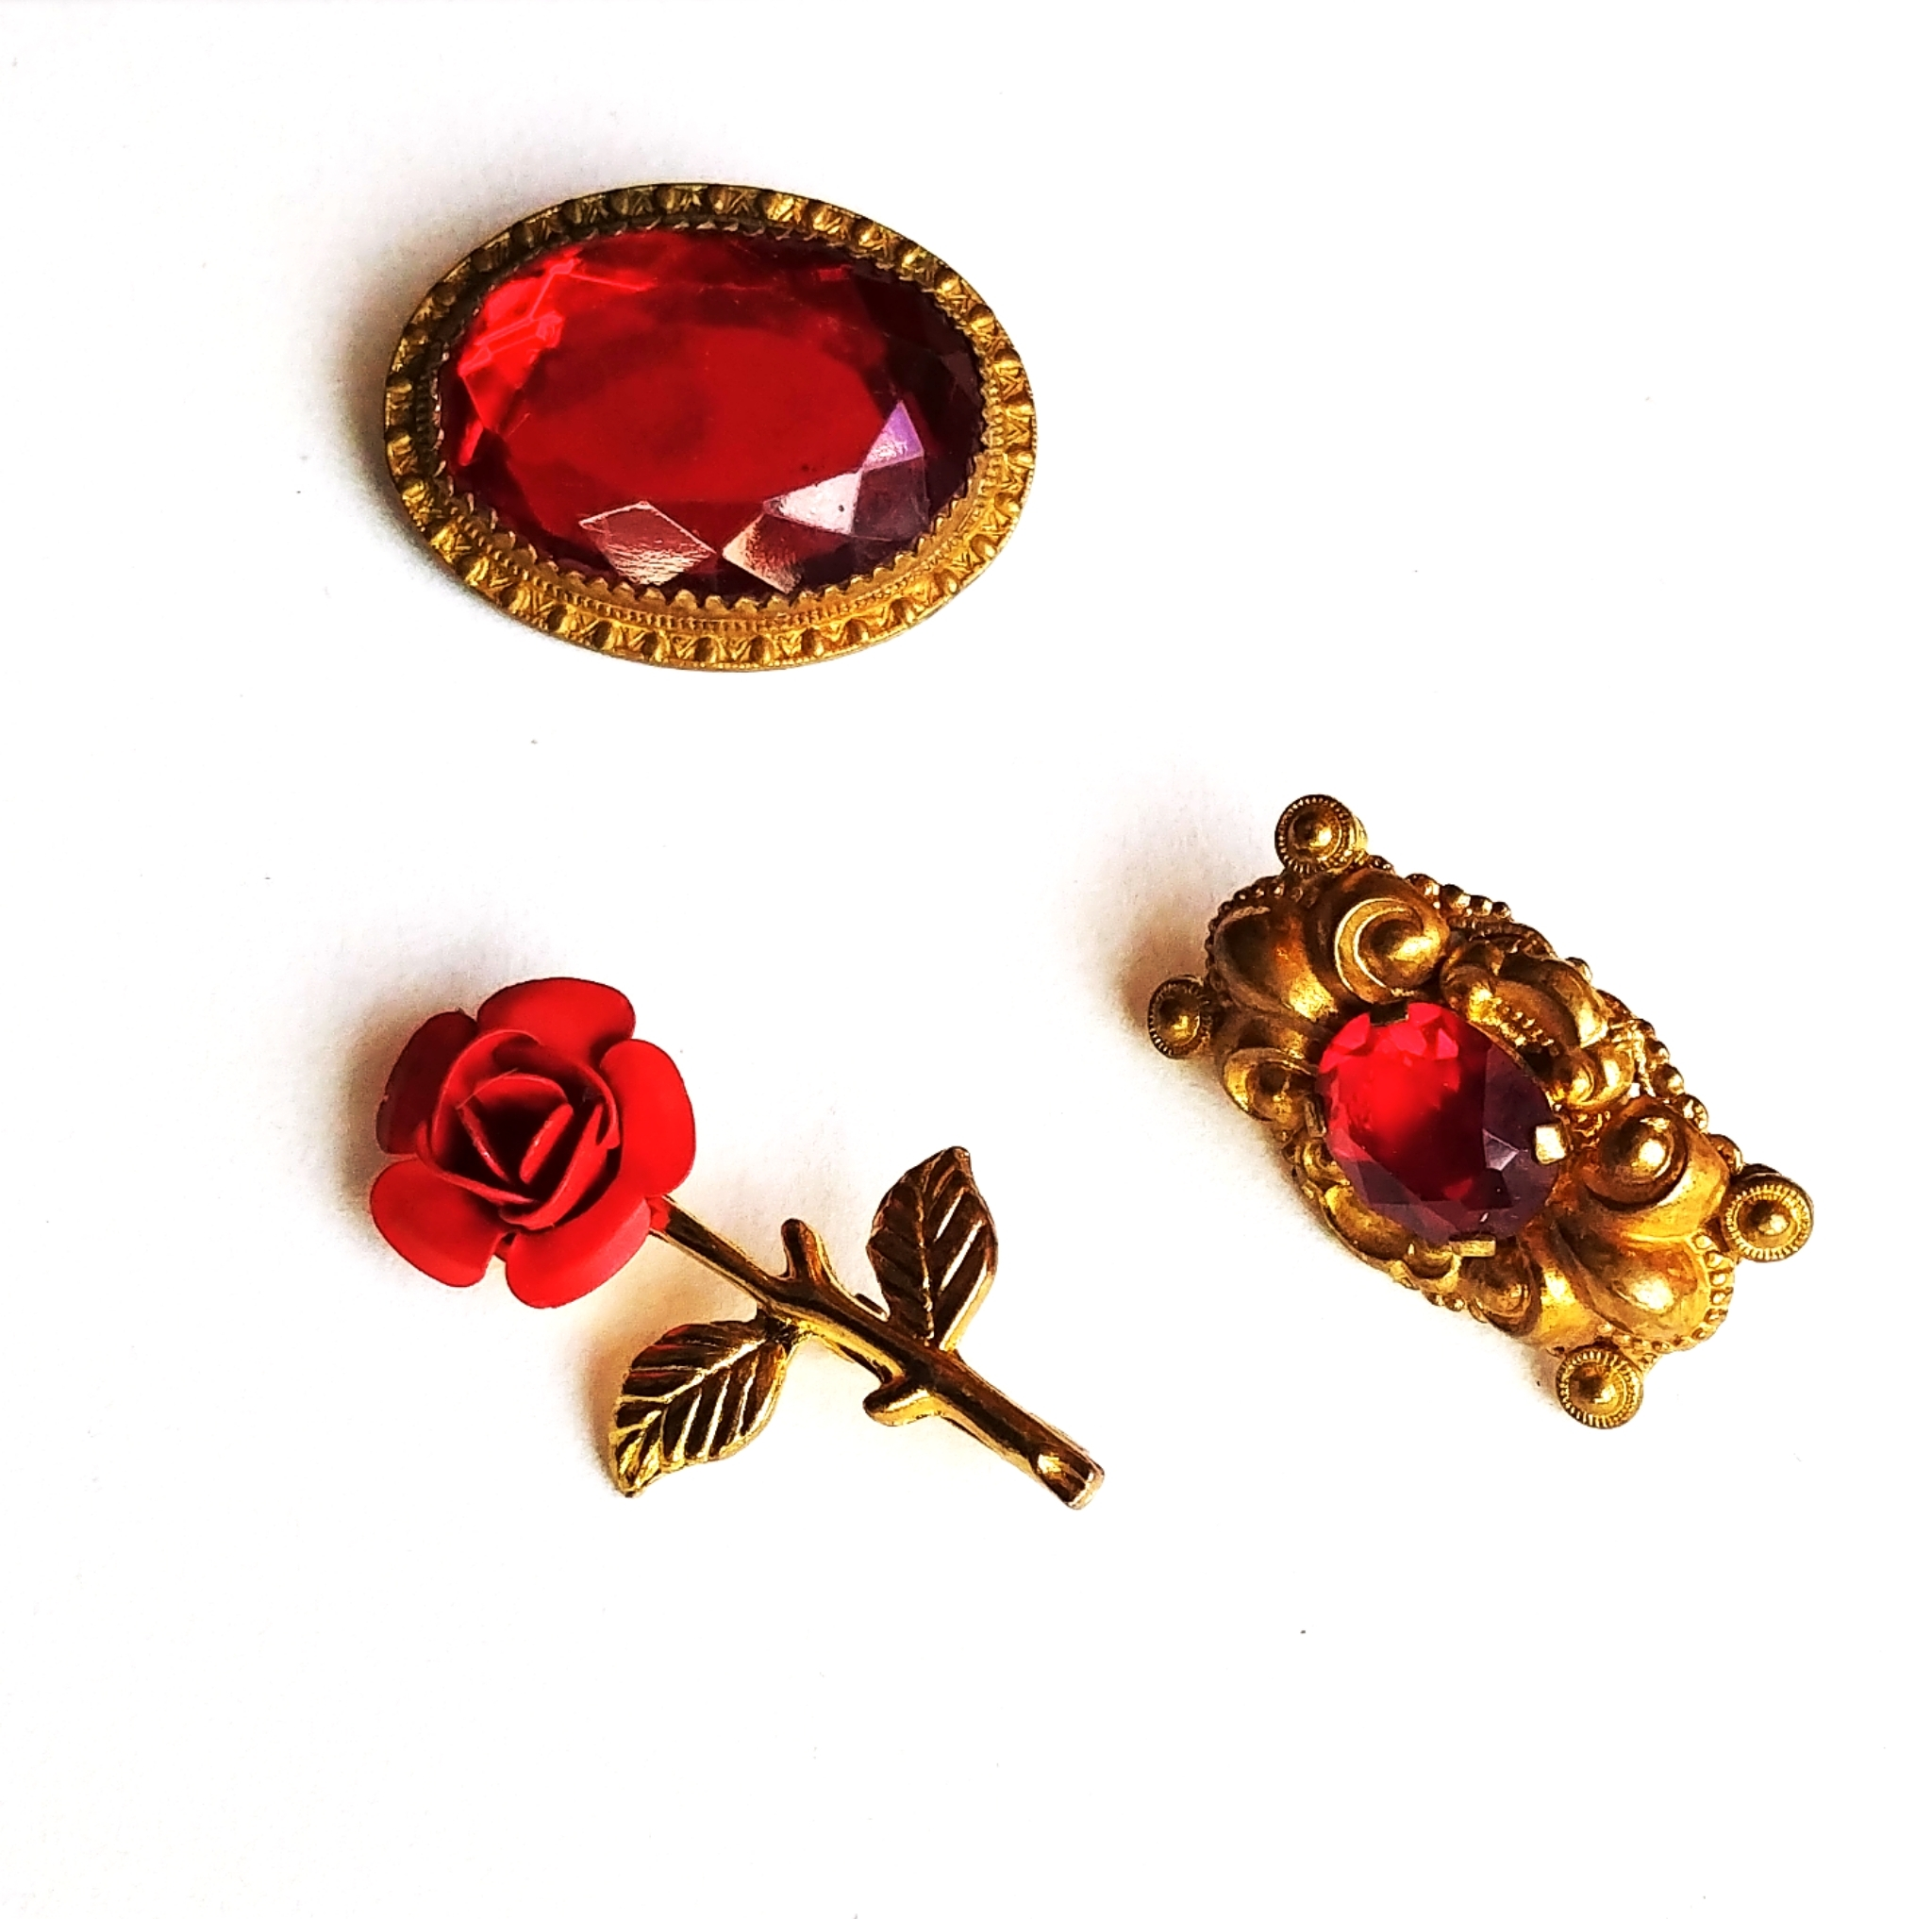 Red themed vintage brooches